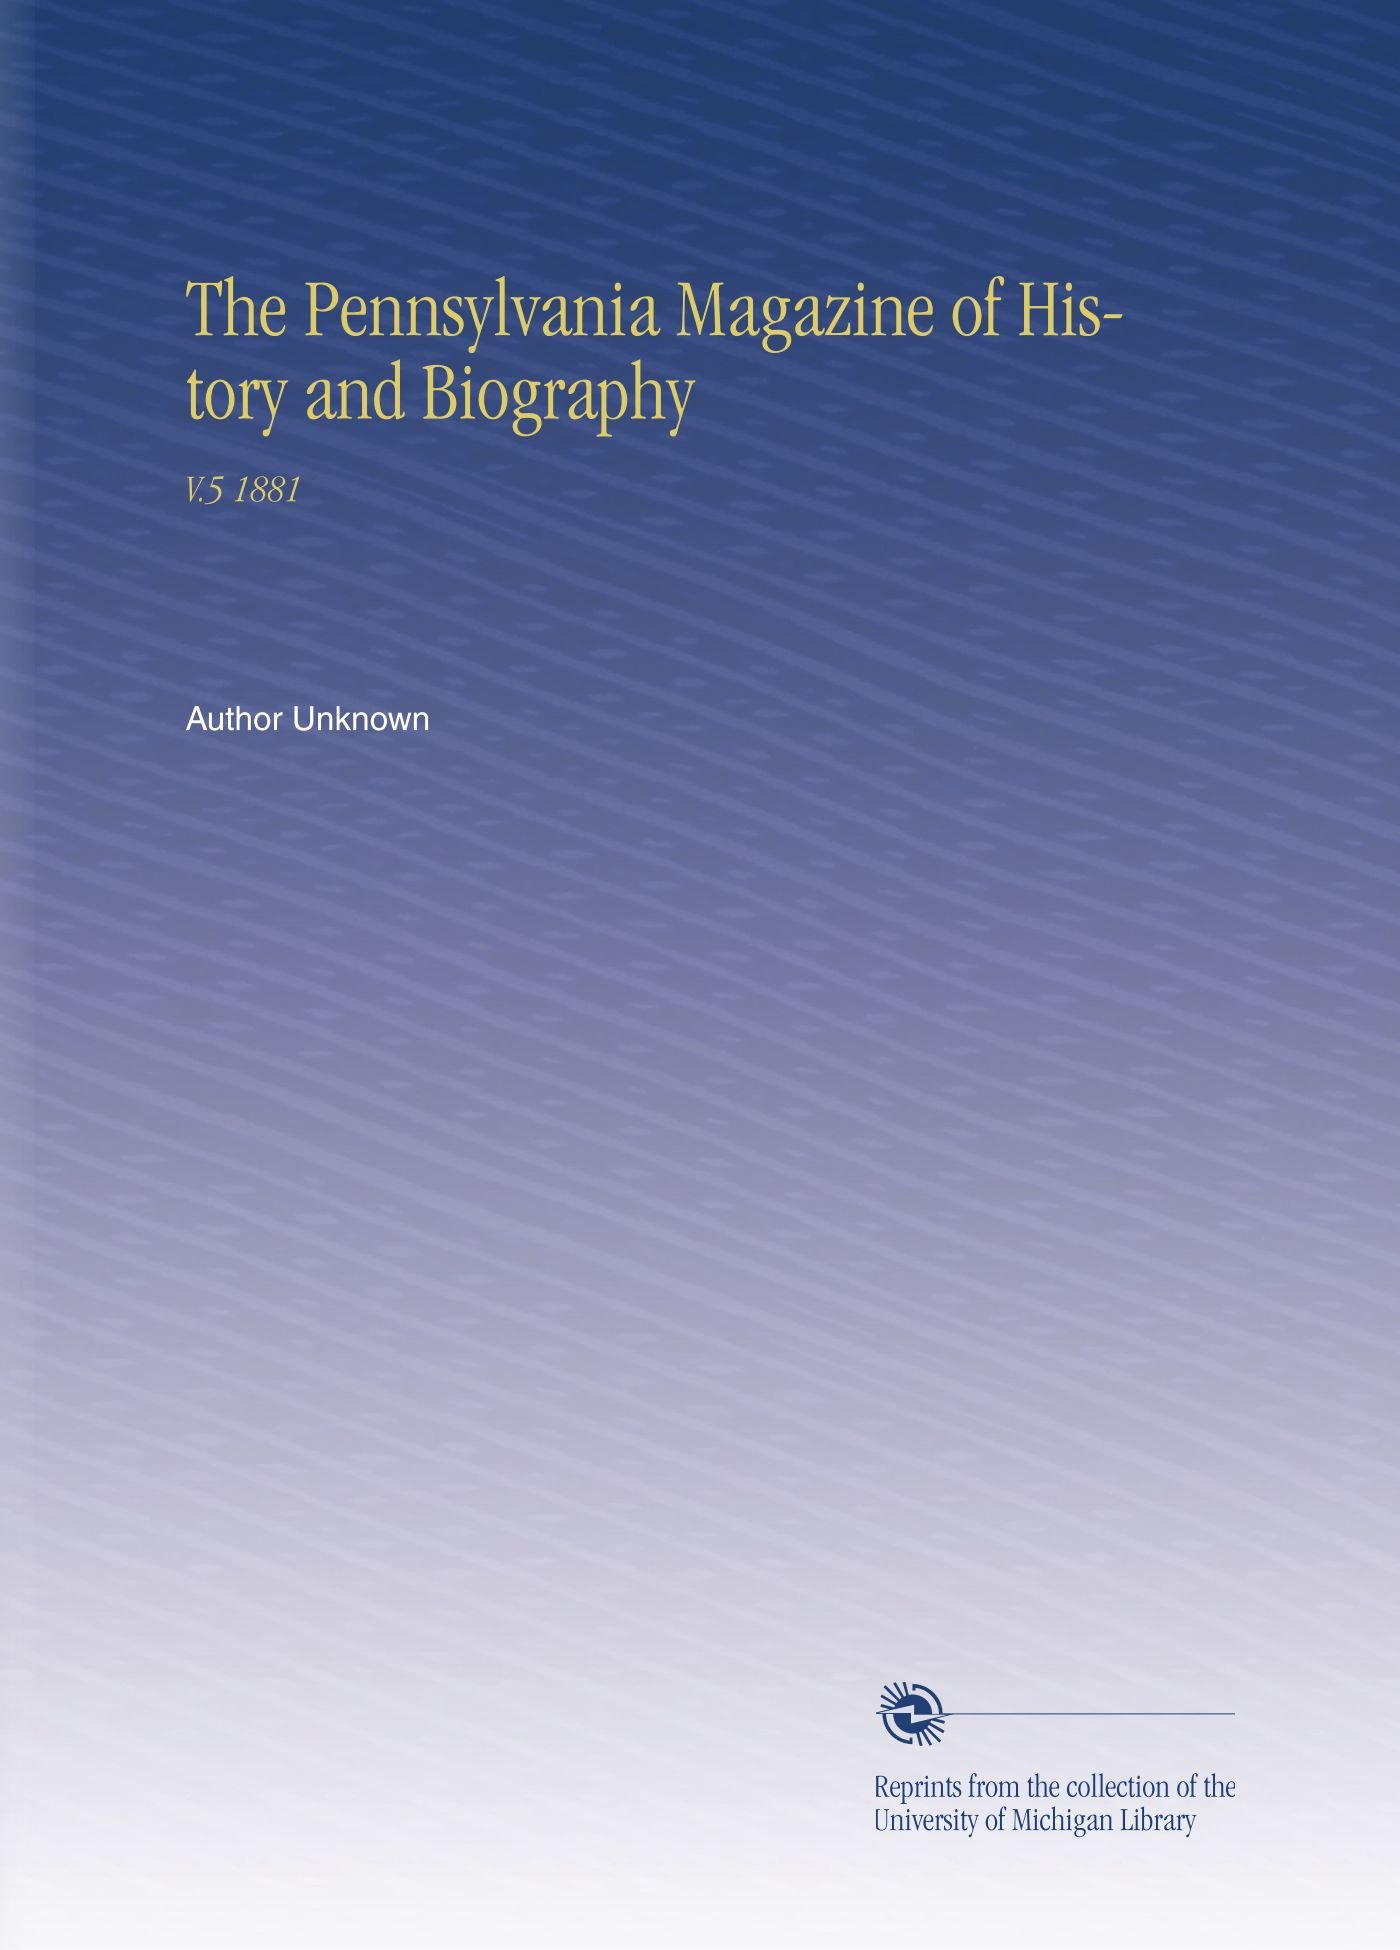 Download The Pennsylvania Magazine of History and Biography: V.5 1881 PDF